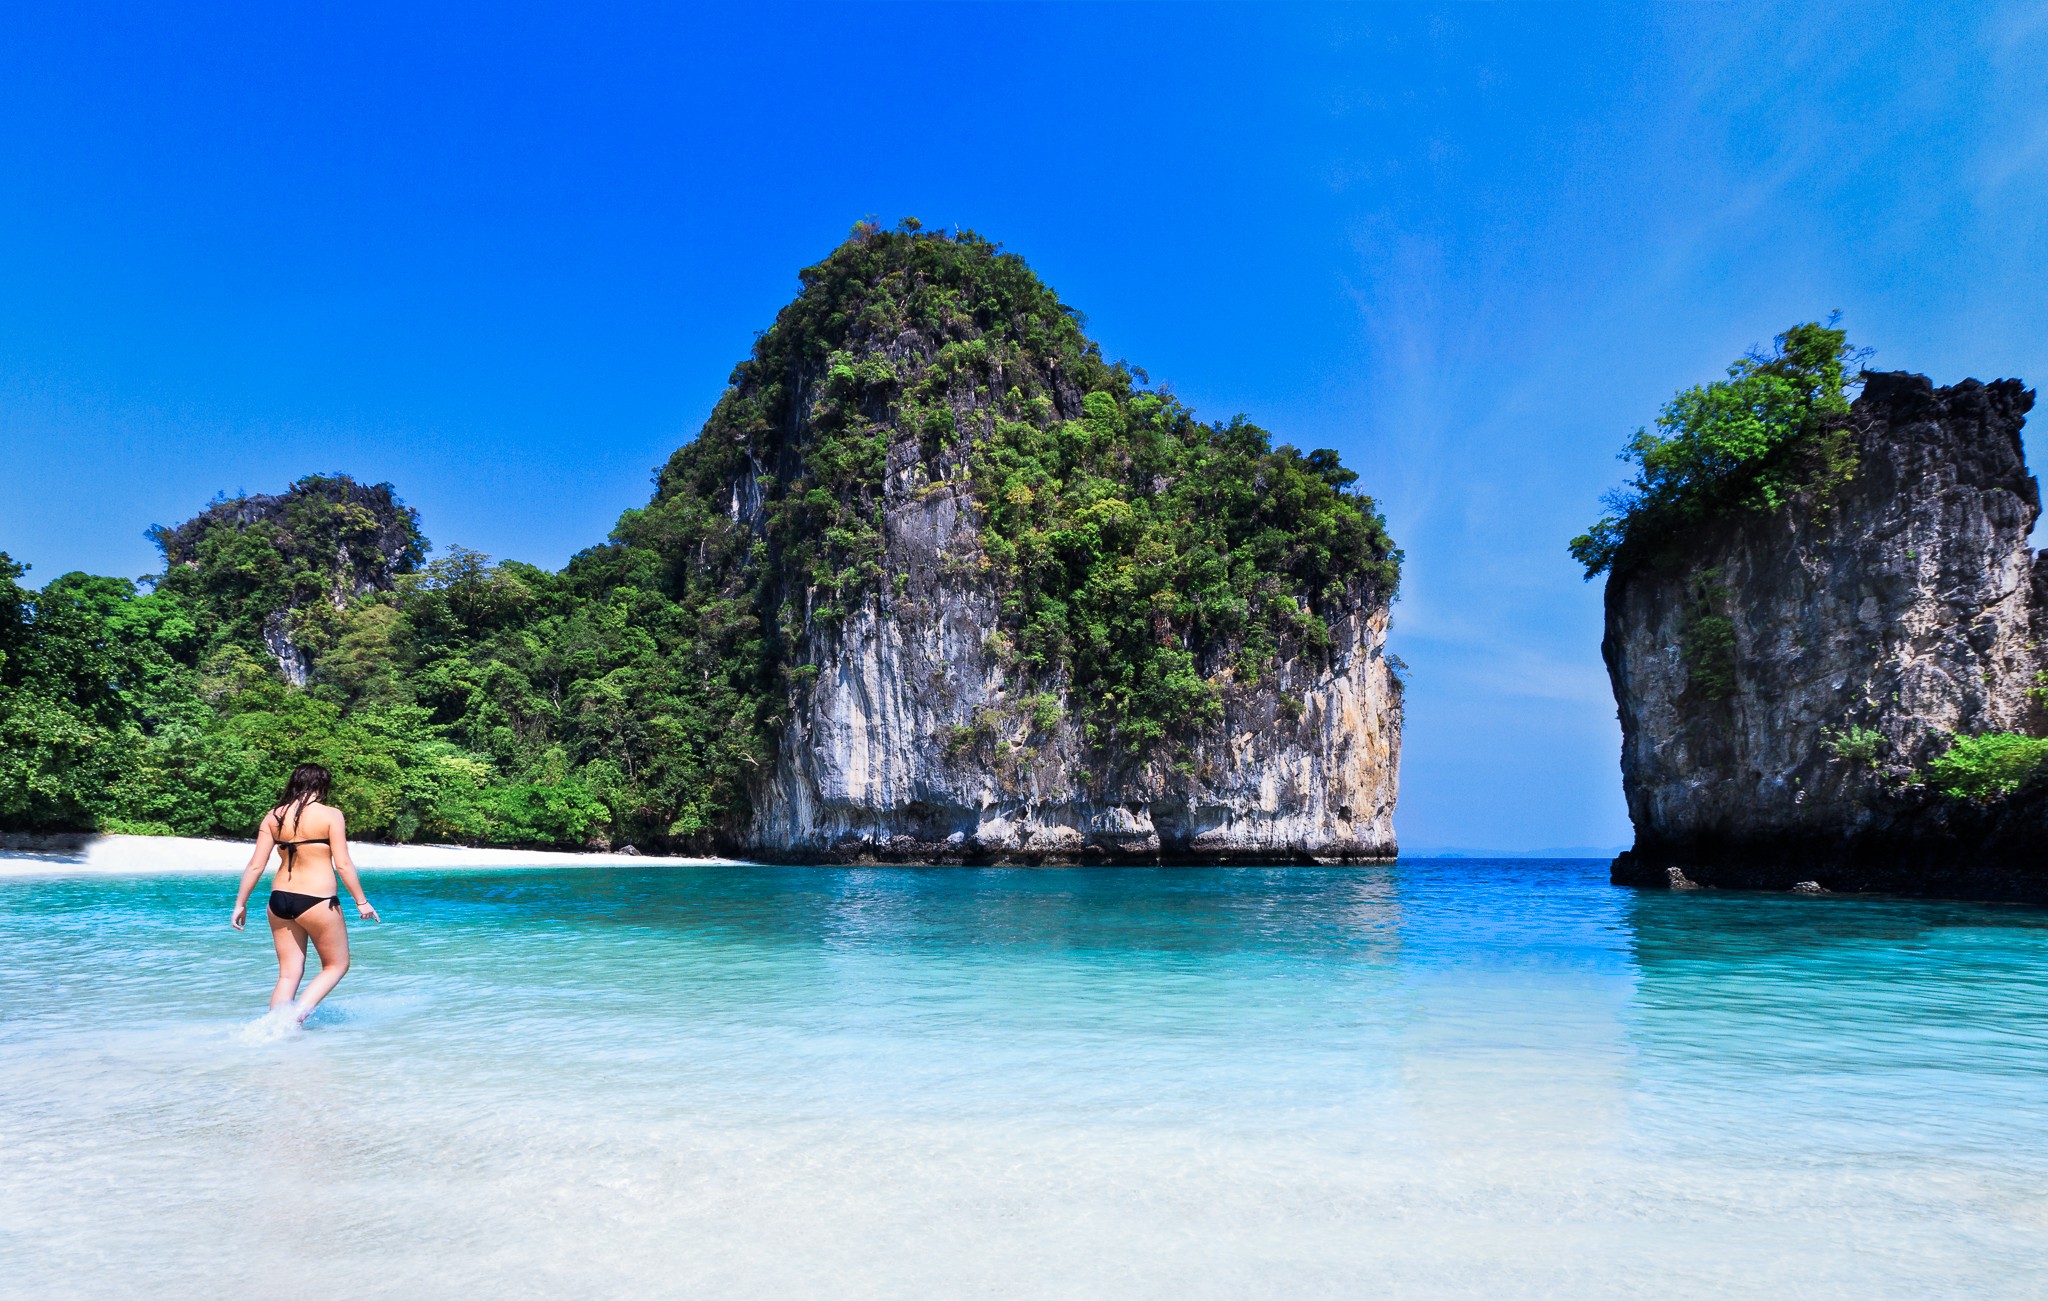 10 amazing places to visit in thailand the pro travel guide for Top ten places to vacation